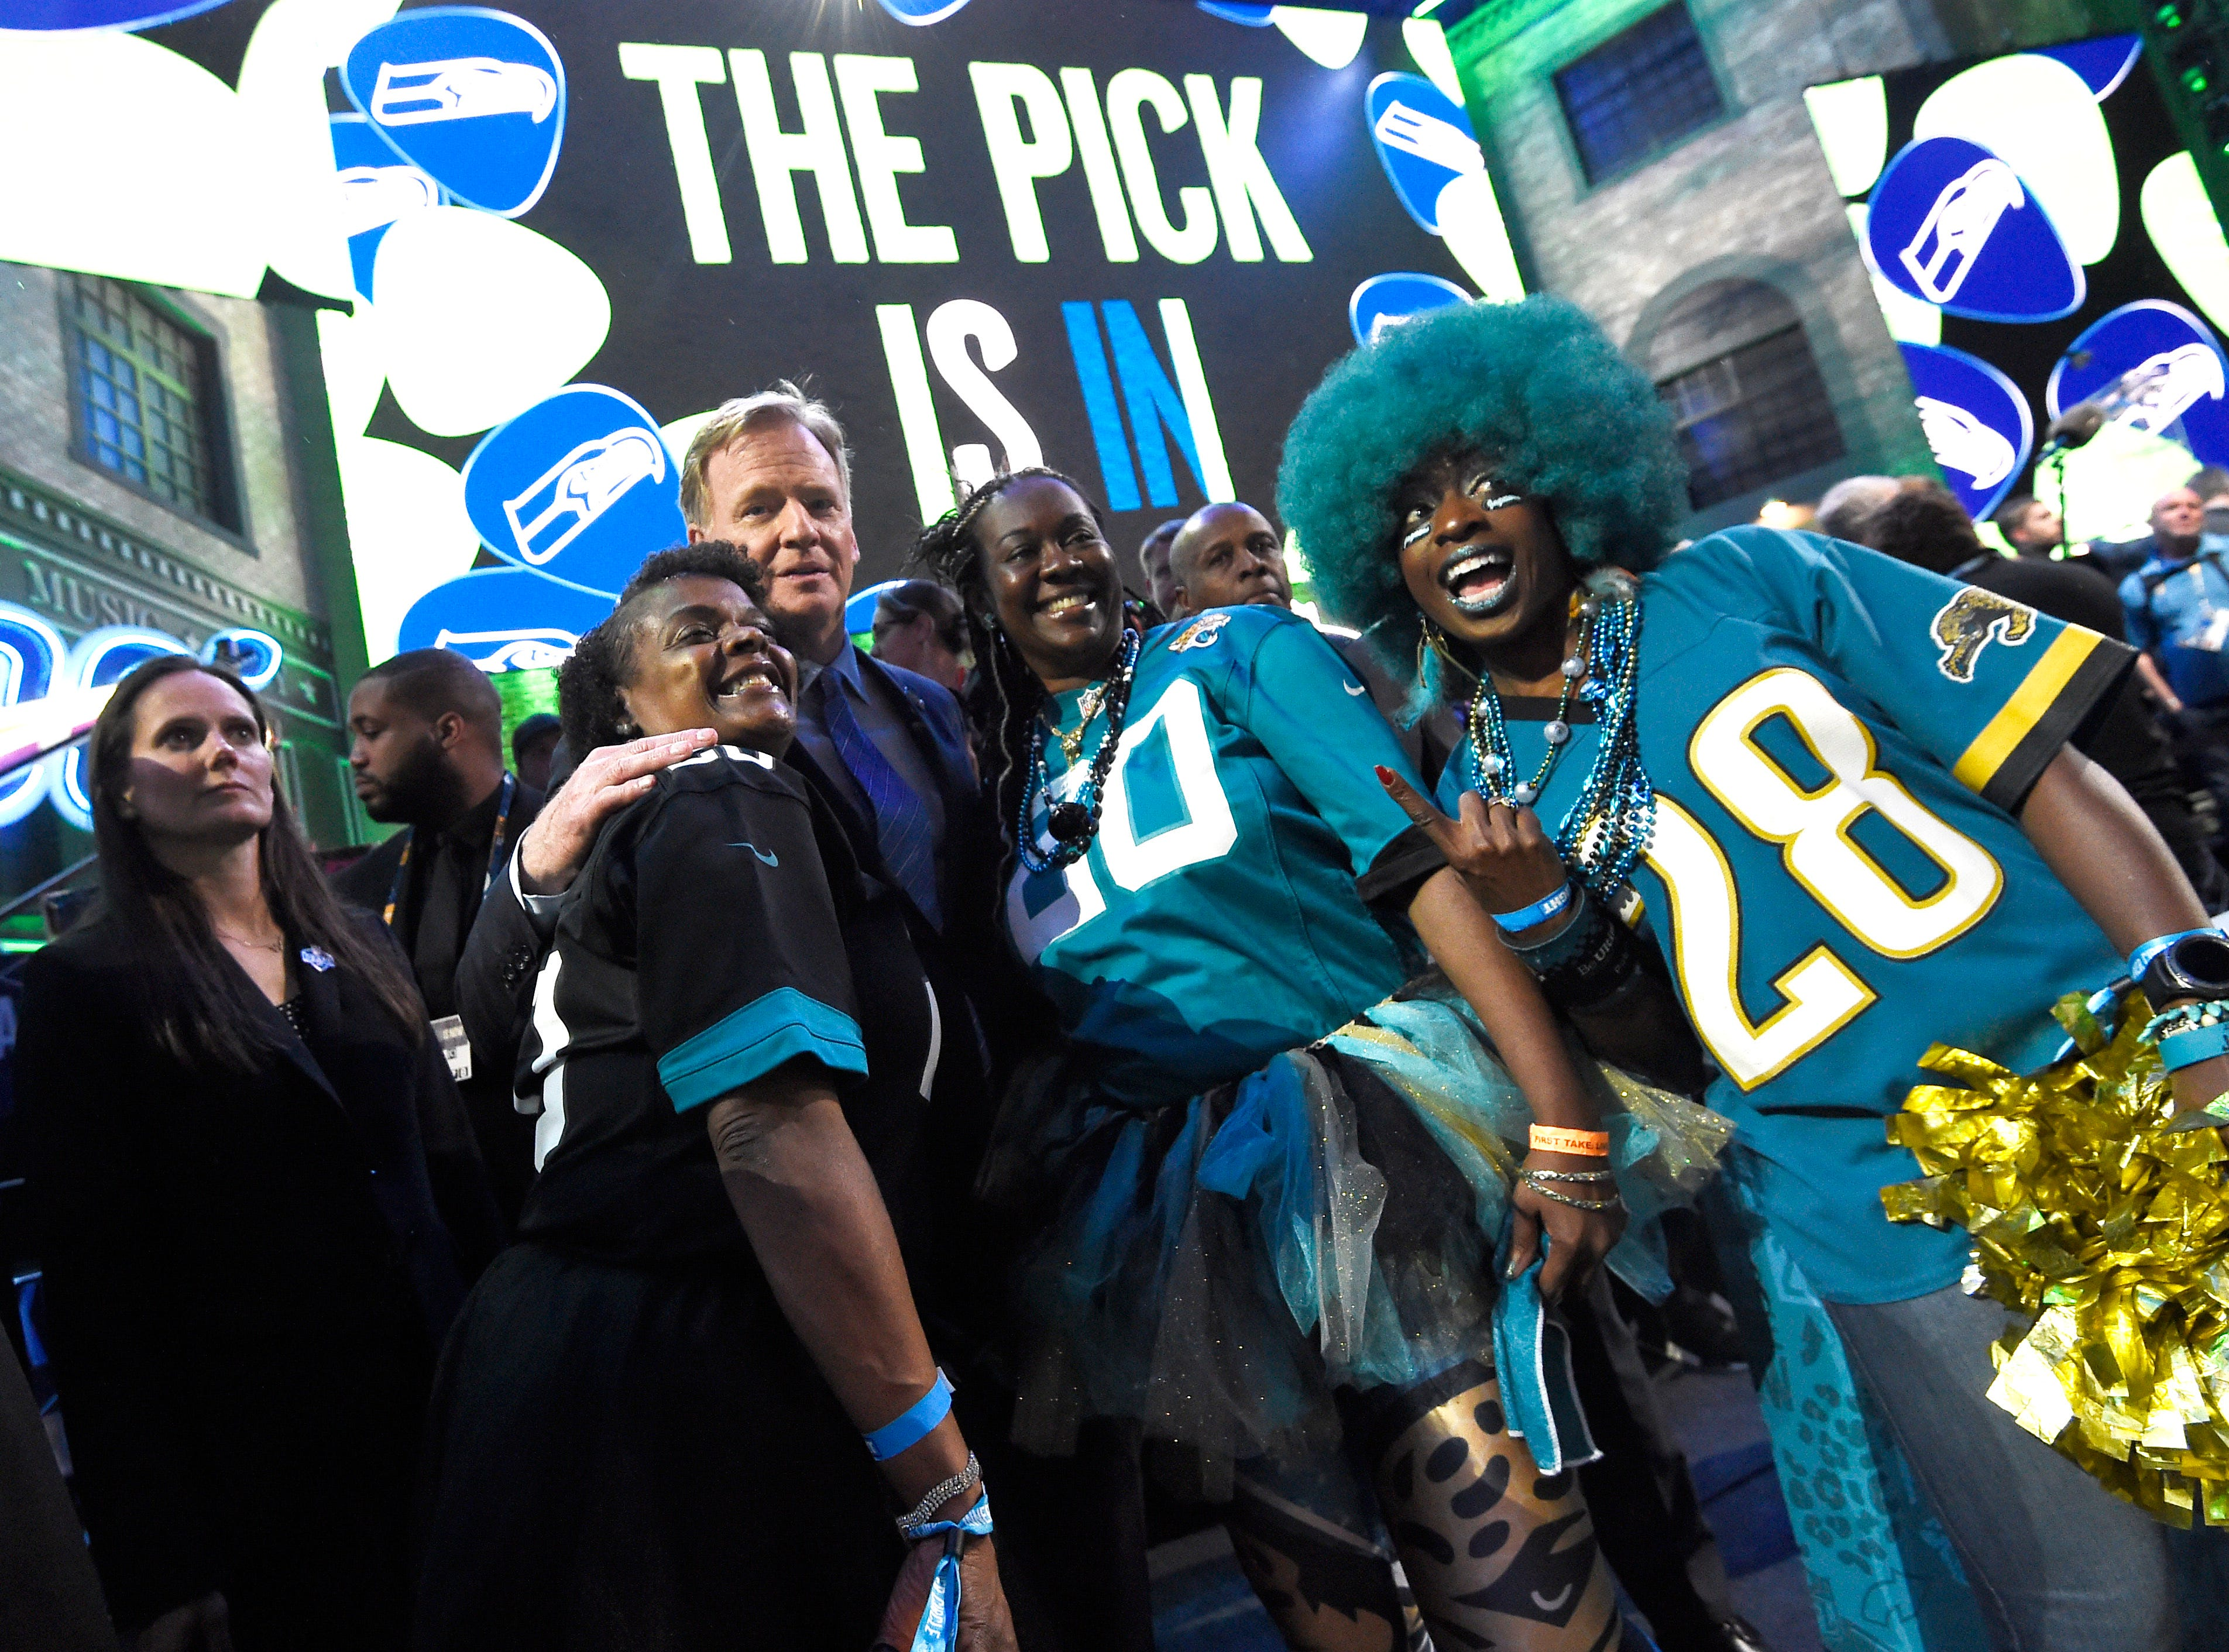 NFL Commisioner Roger Goodell poses with Jaguars fans during the first round of the NFL Draft Thursday, April 25, 2019, in Nashville, Tenn.